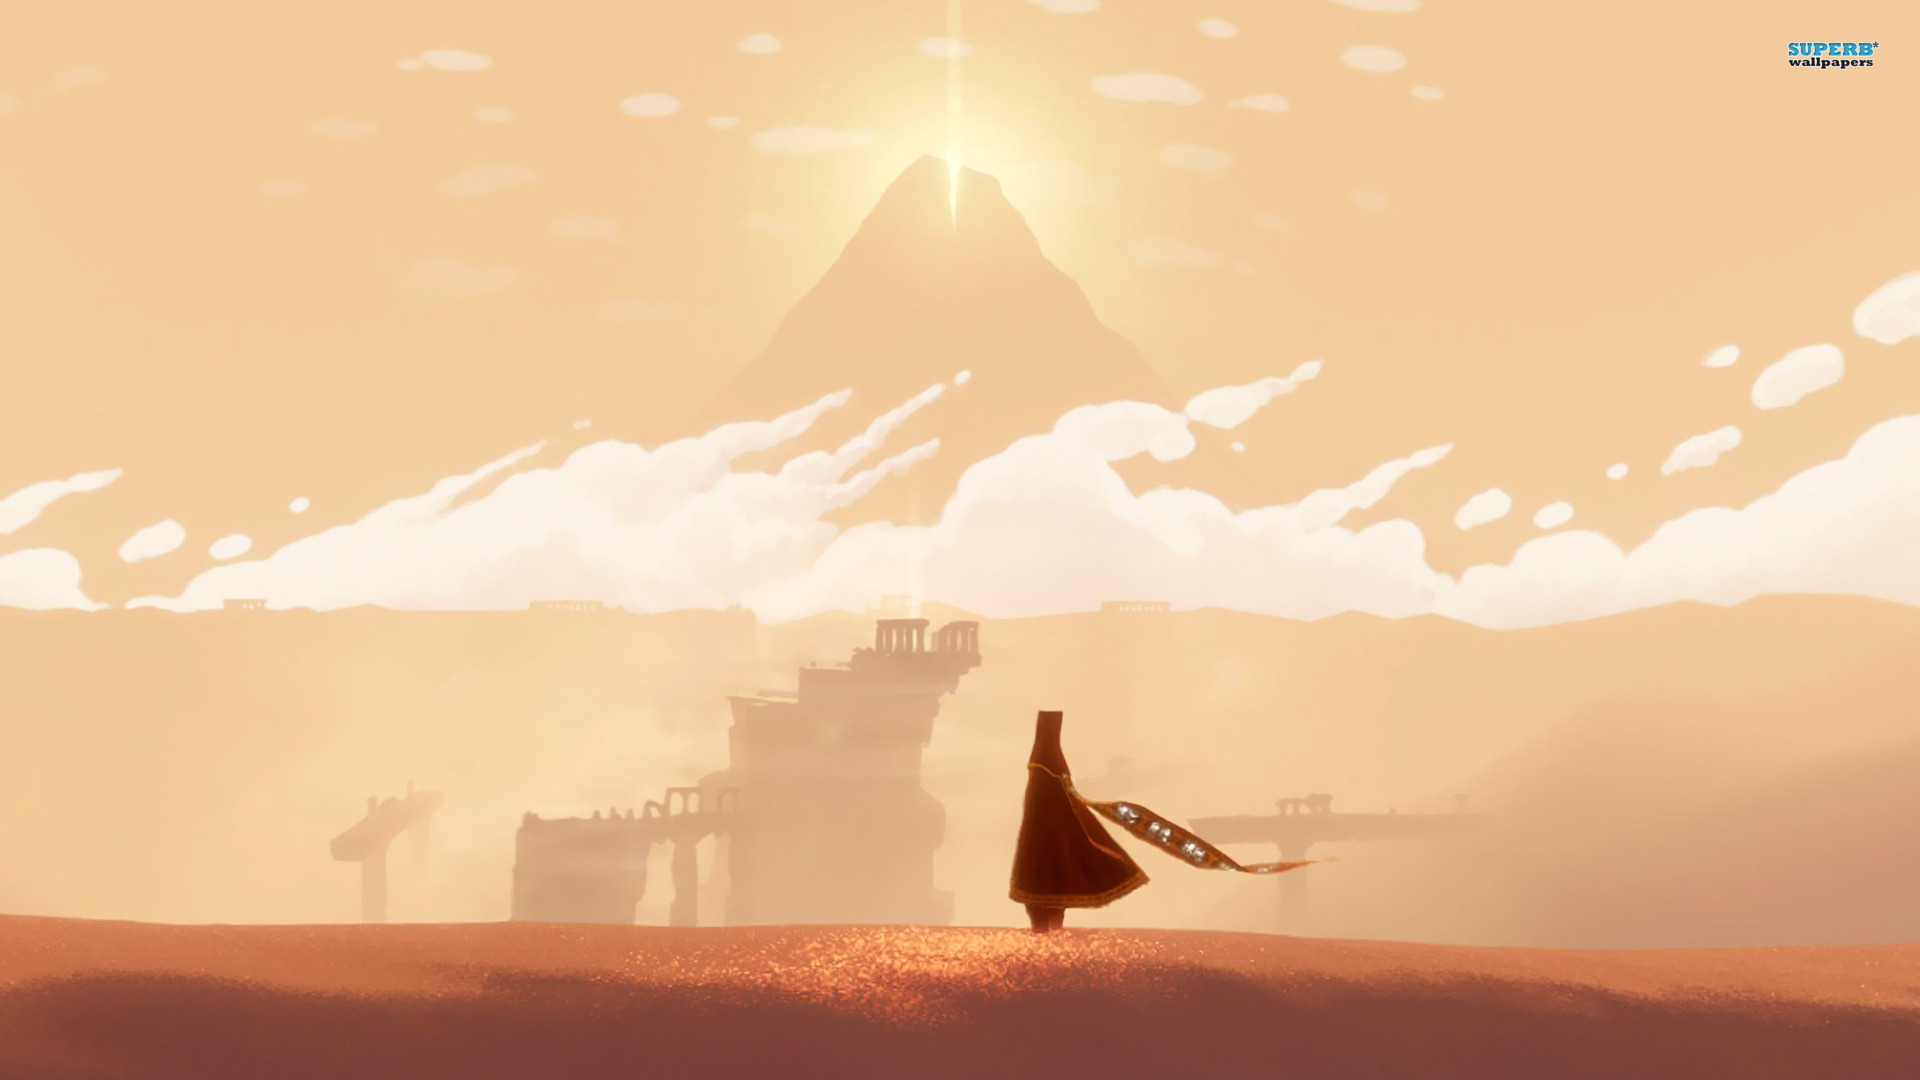 Journey Game wallpaper 1920x1080 78940 1920x1080